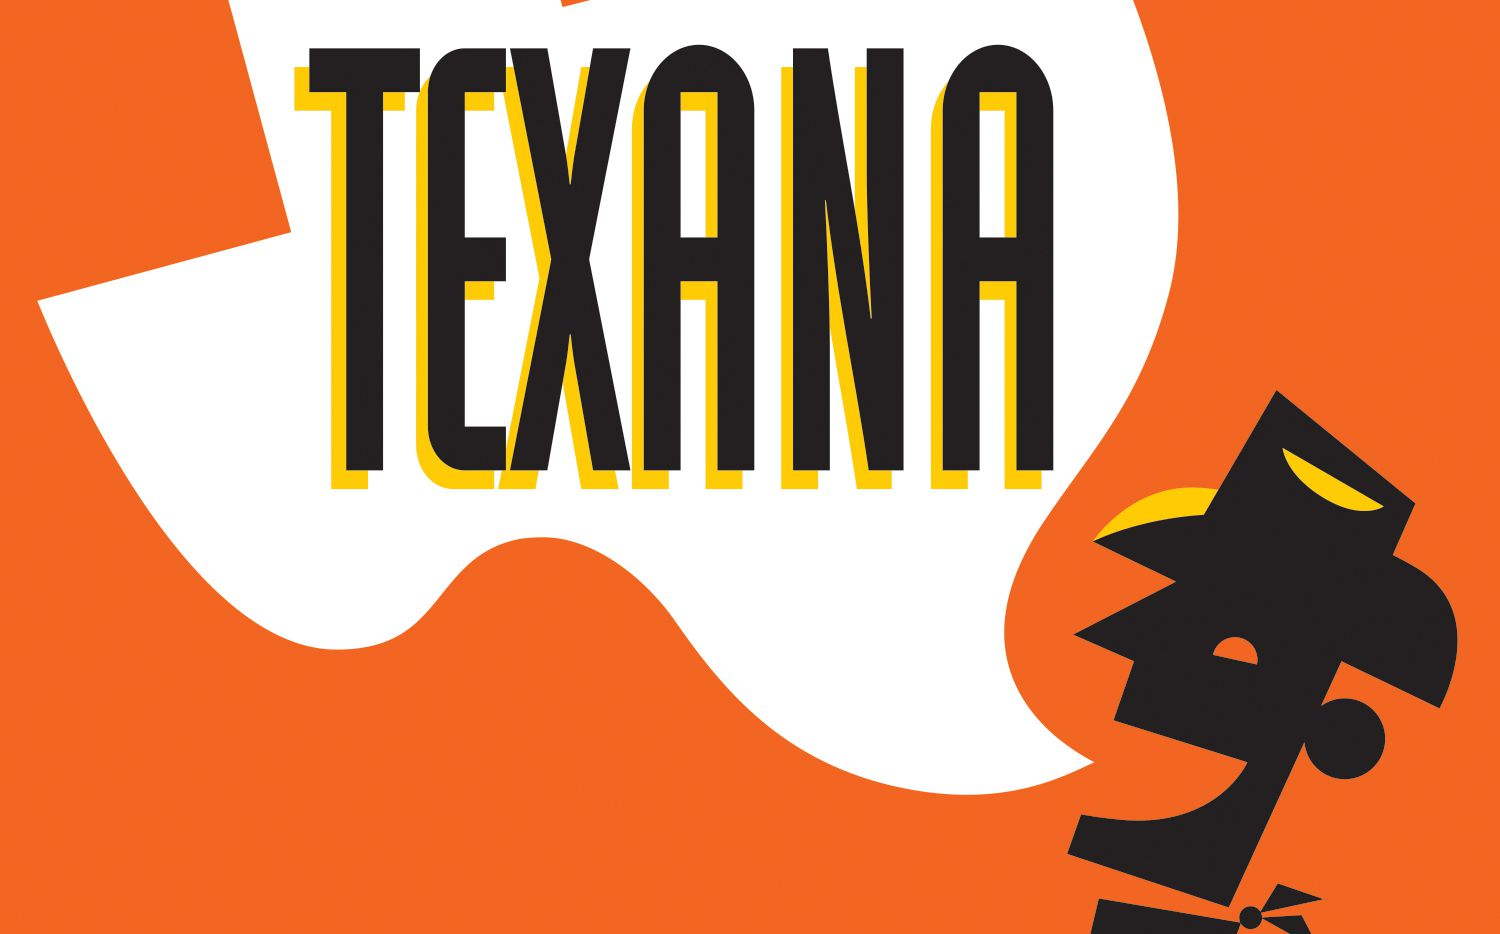 Introducing Texana, a Facebook group for Lone Star stories